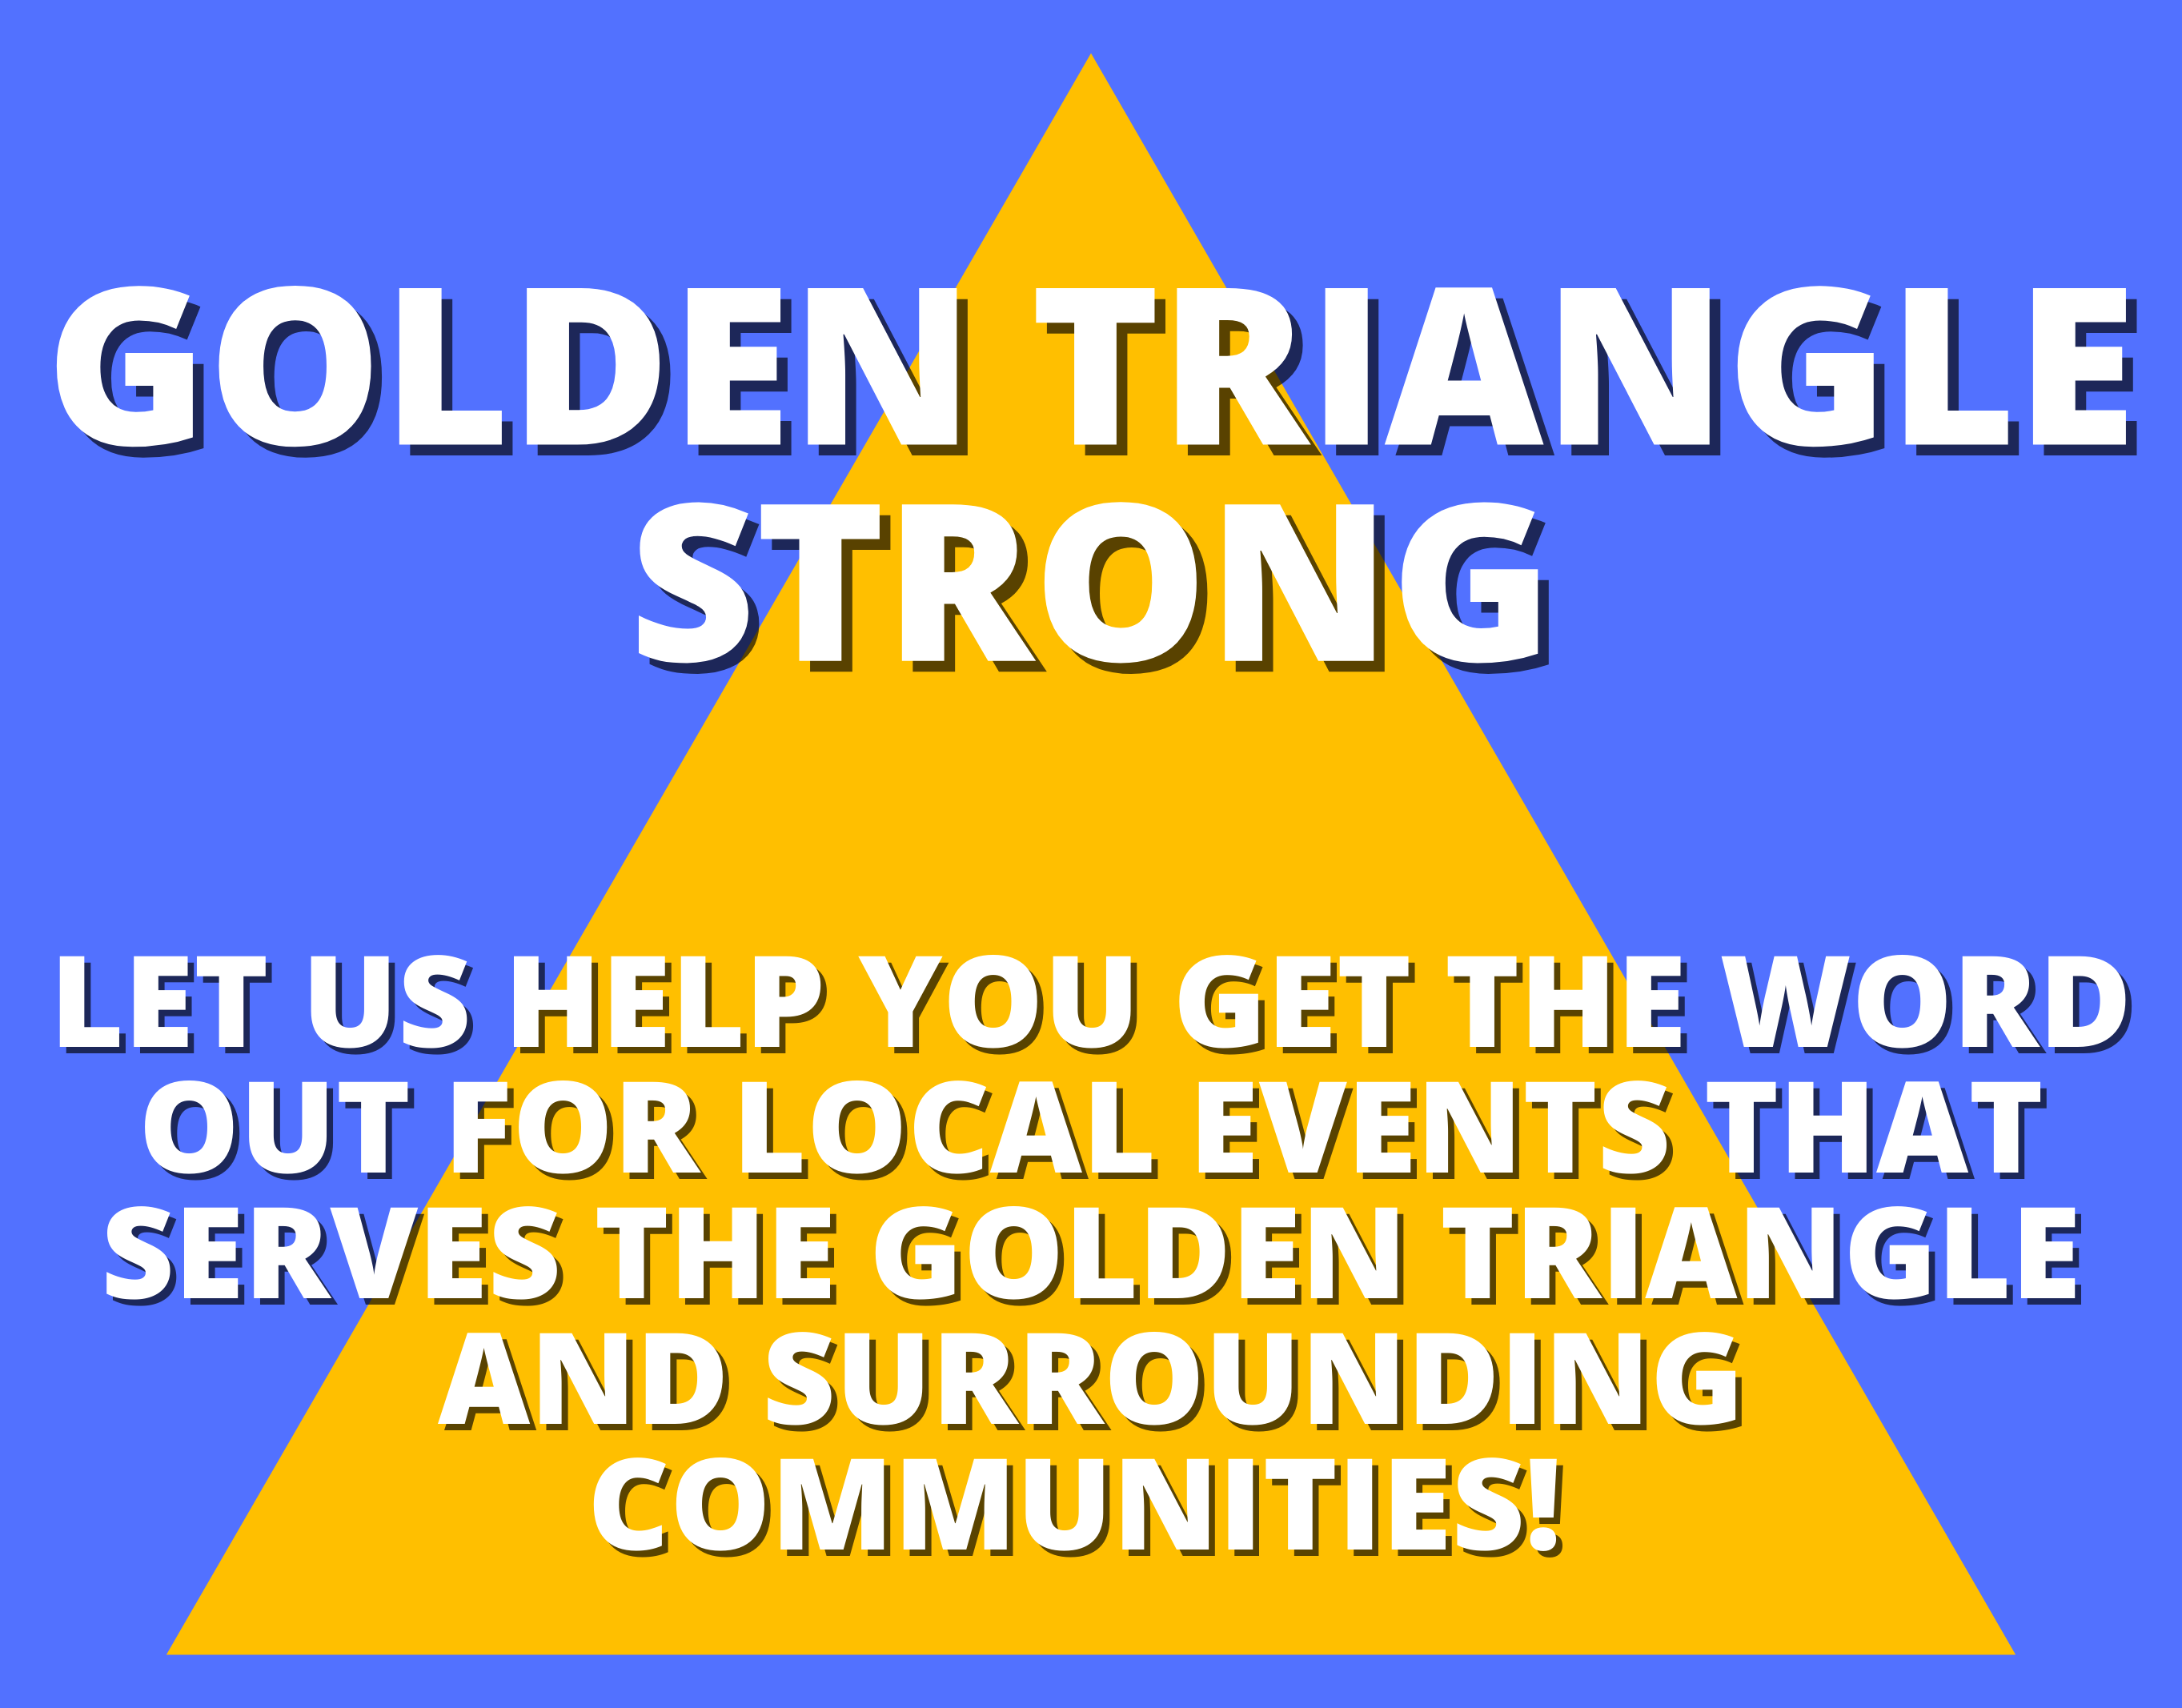 Golden Triangle Strong